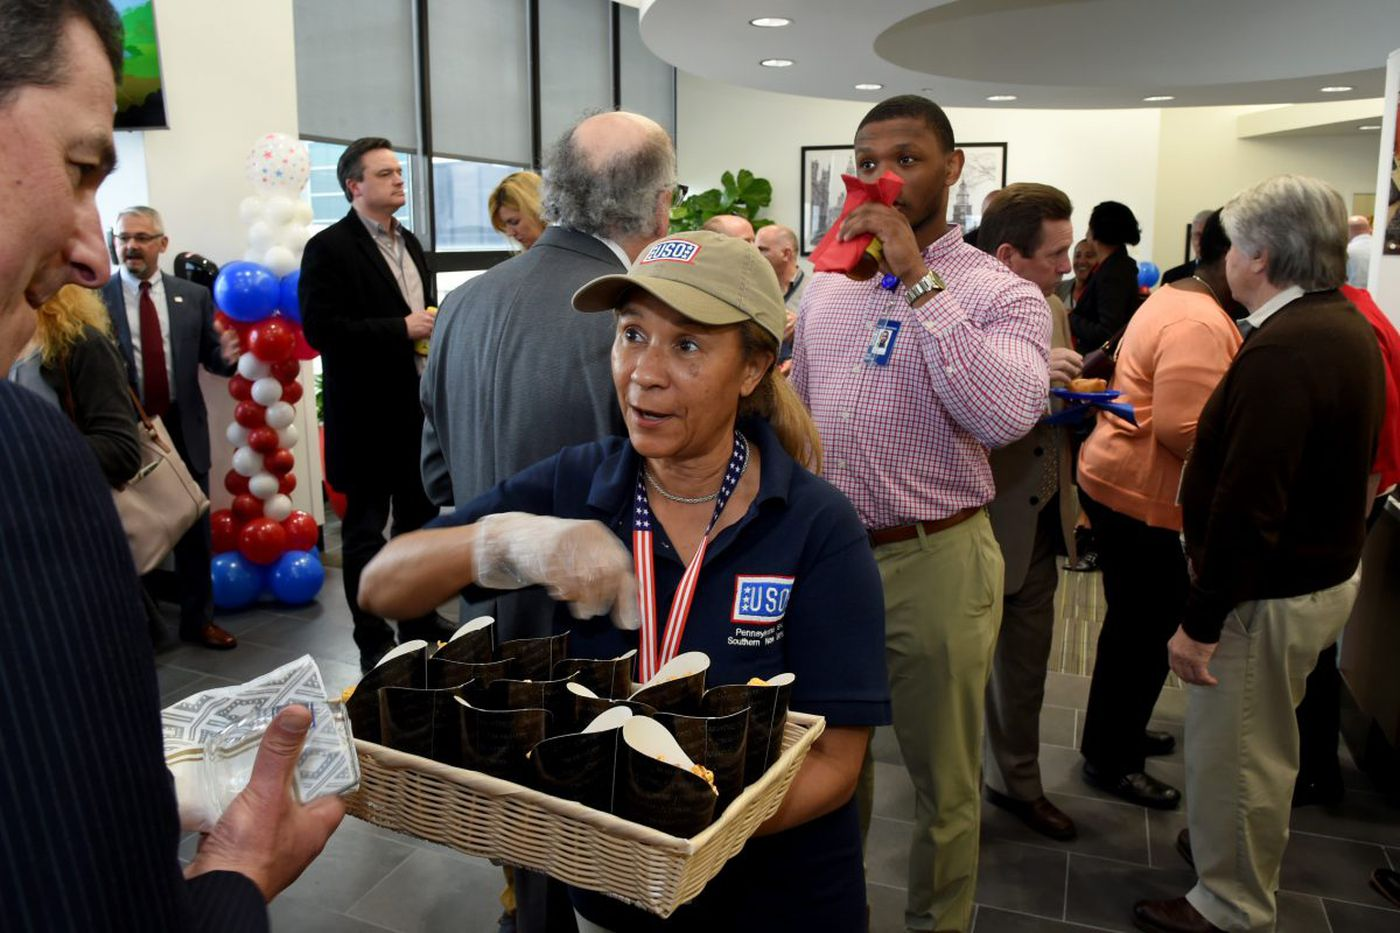 Philadelphia airport opens larger lounge for military families in transit